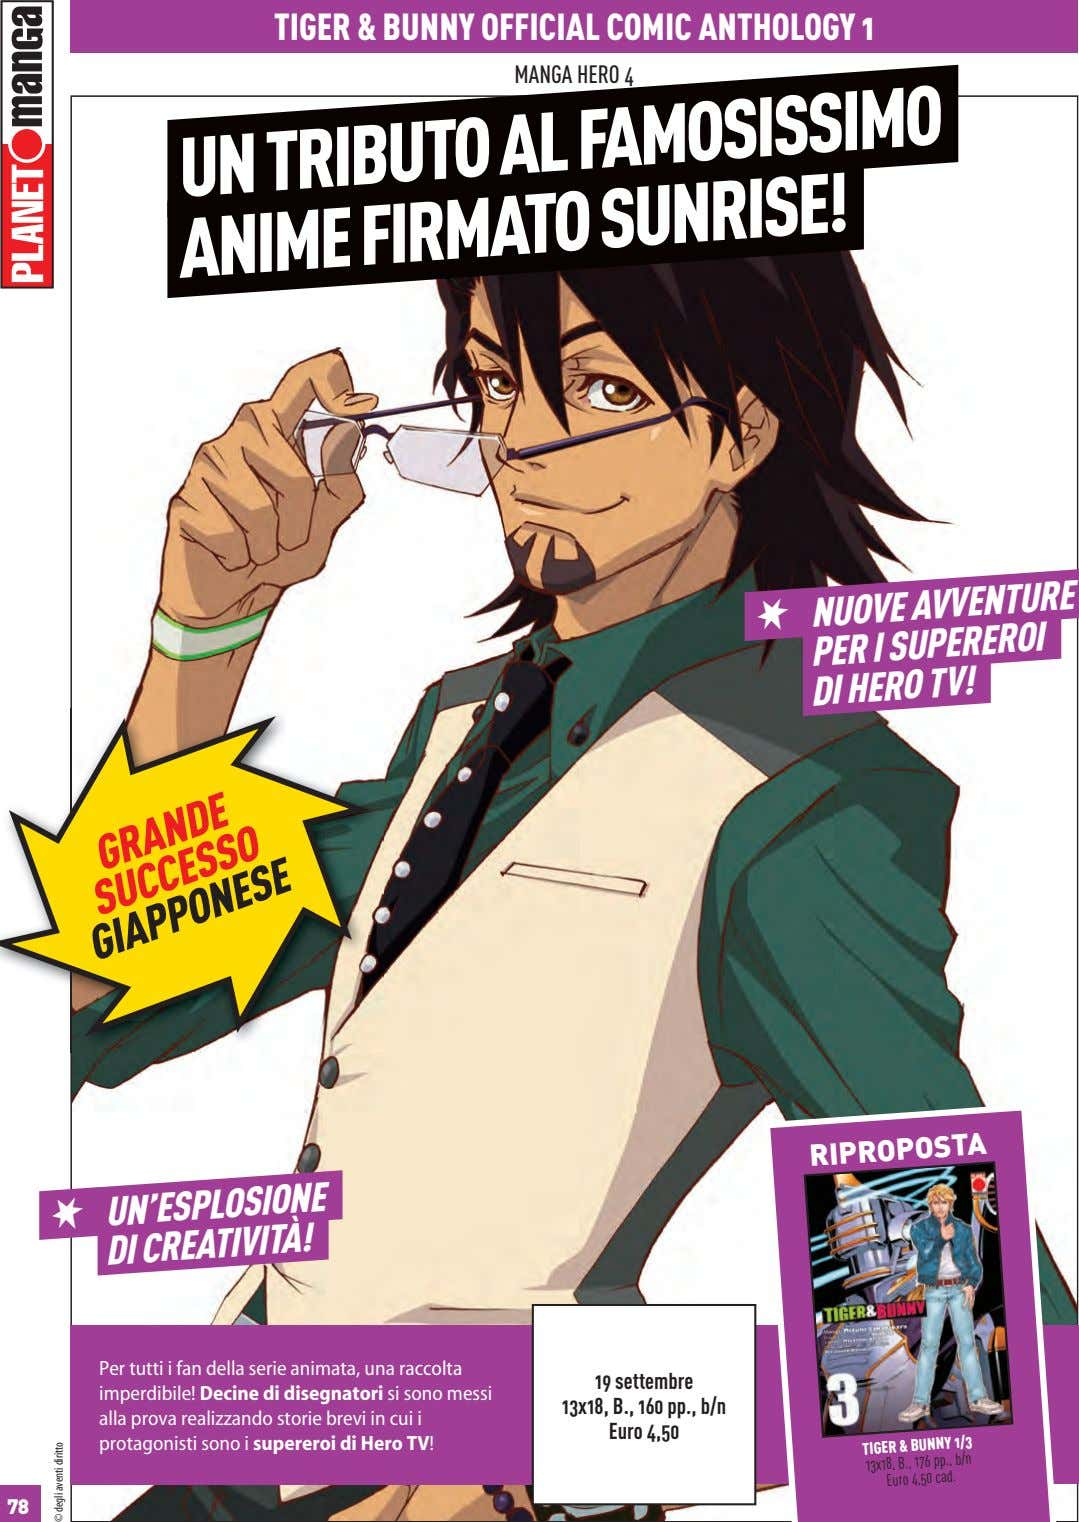 TIGER & BUNNY OFFICIAL COMIC ANTHOLOGY 1 MANGA HERO 4 C NUOVE AVVENTURE PER I